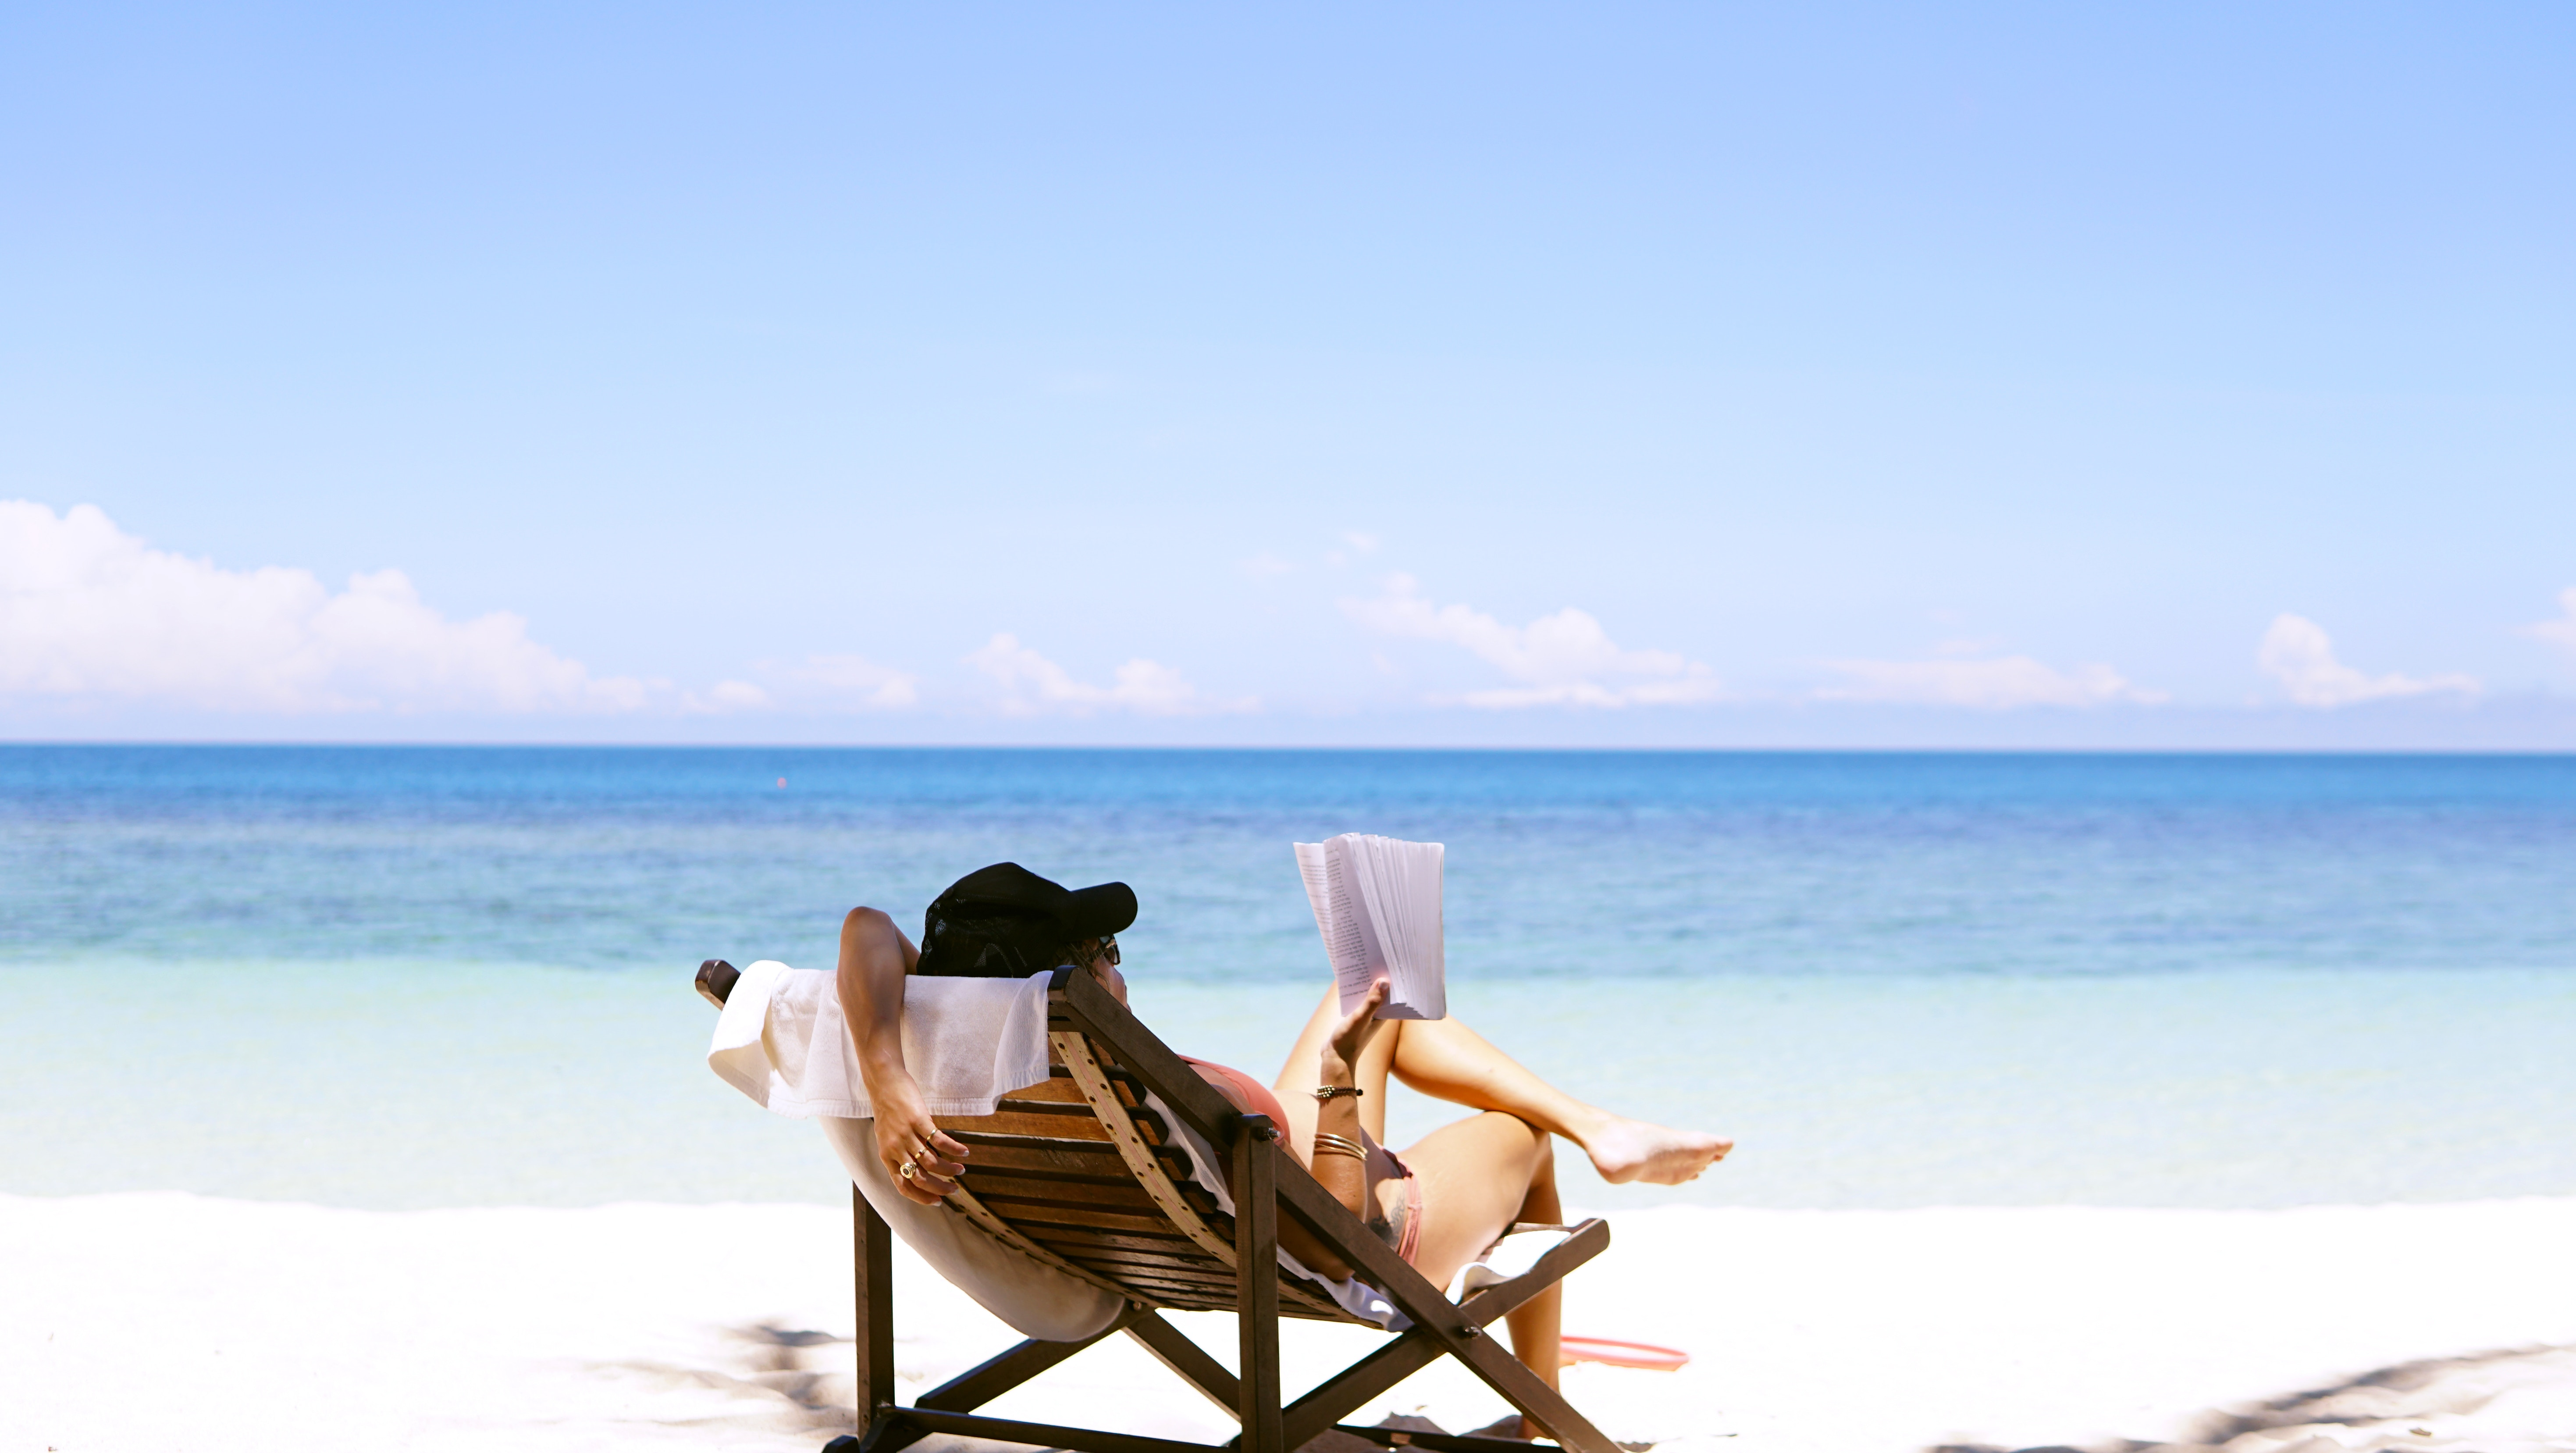 Someone relaxing on a beach holiday